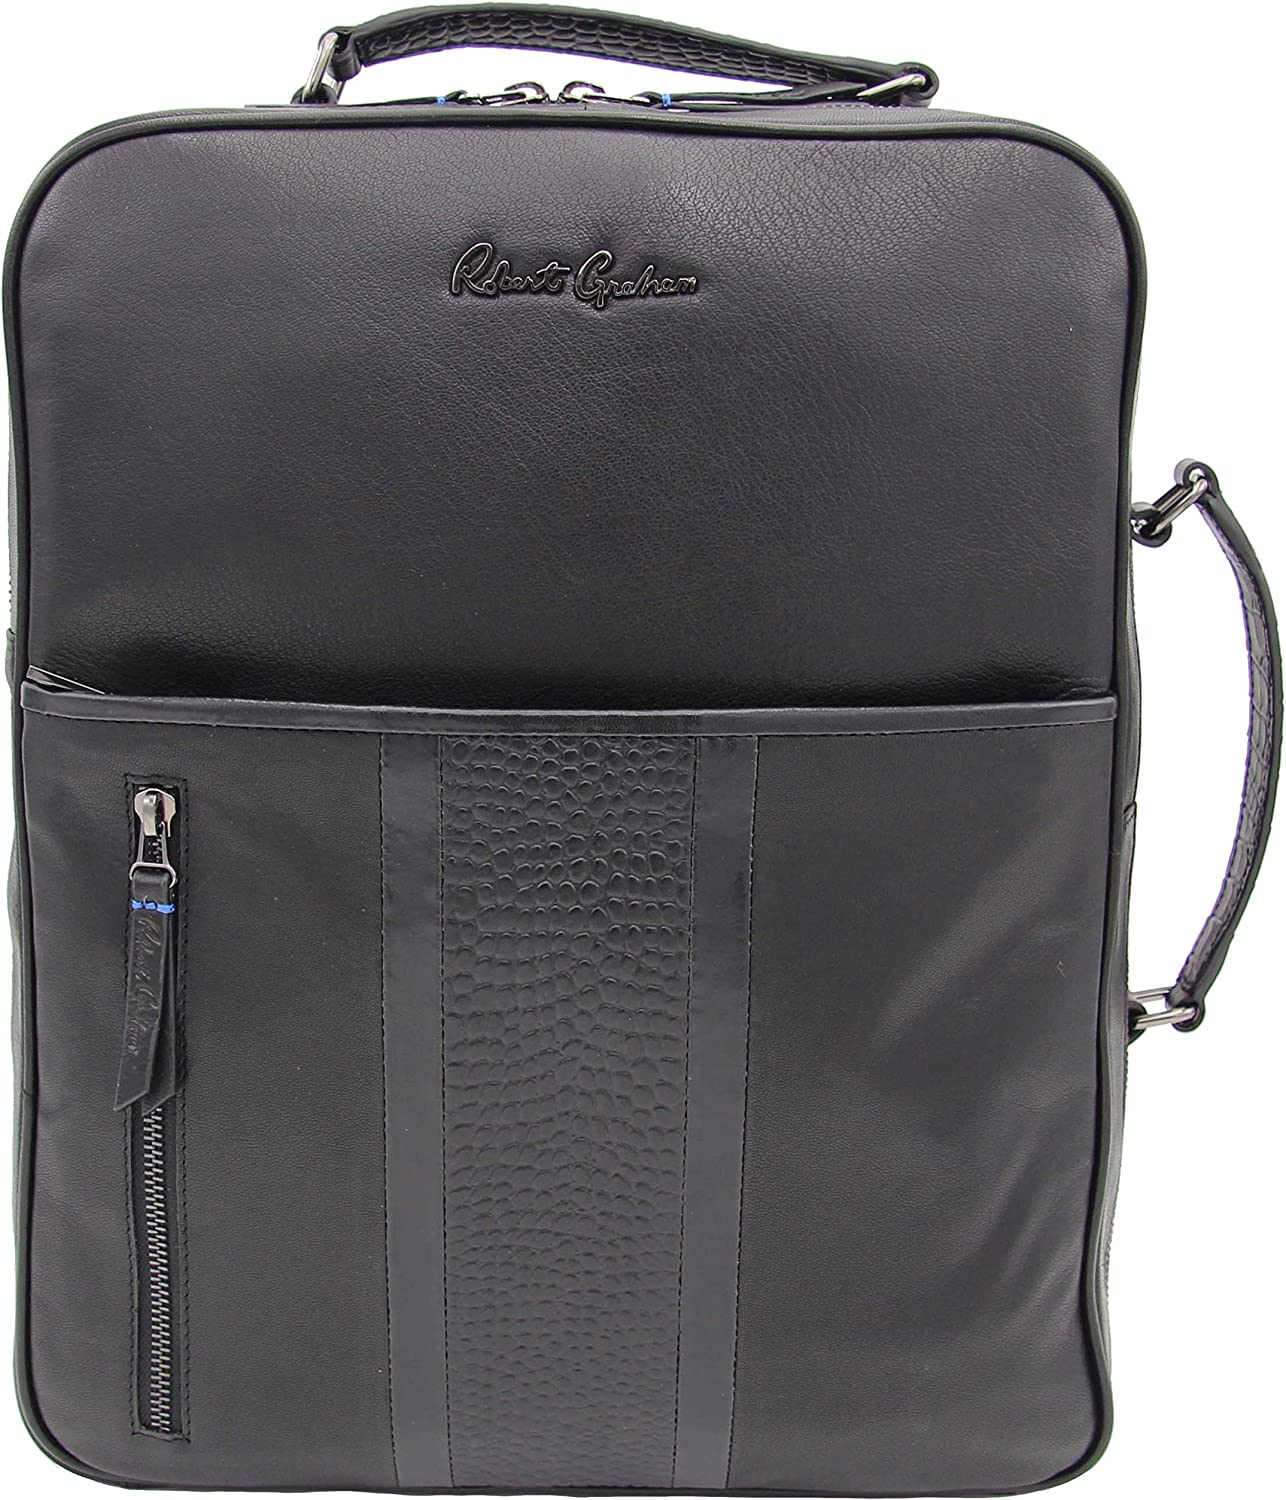 Robert Graham Men's Convertible Backpack Brief Bag